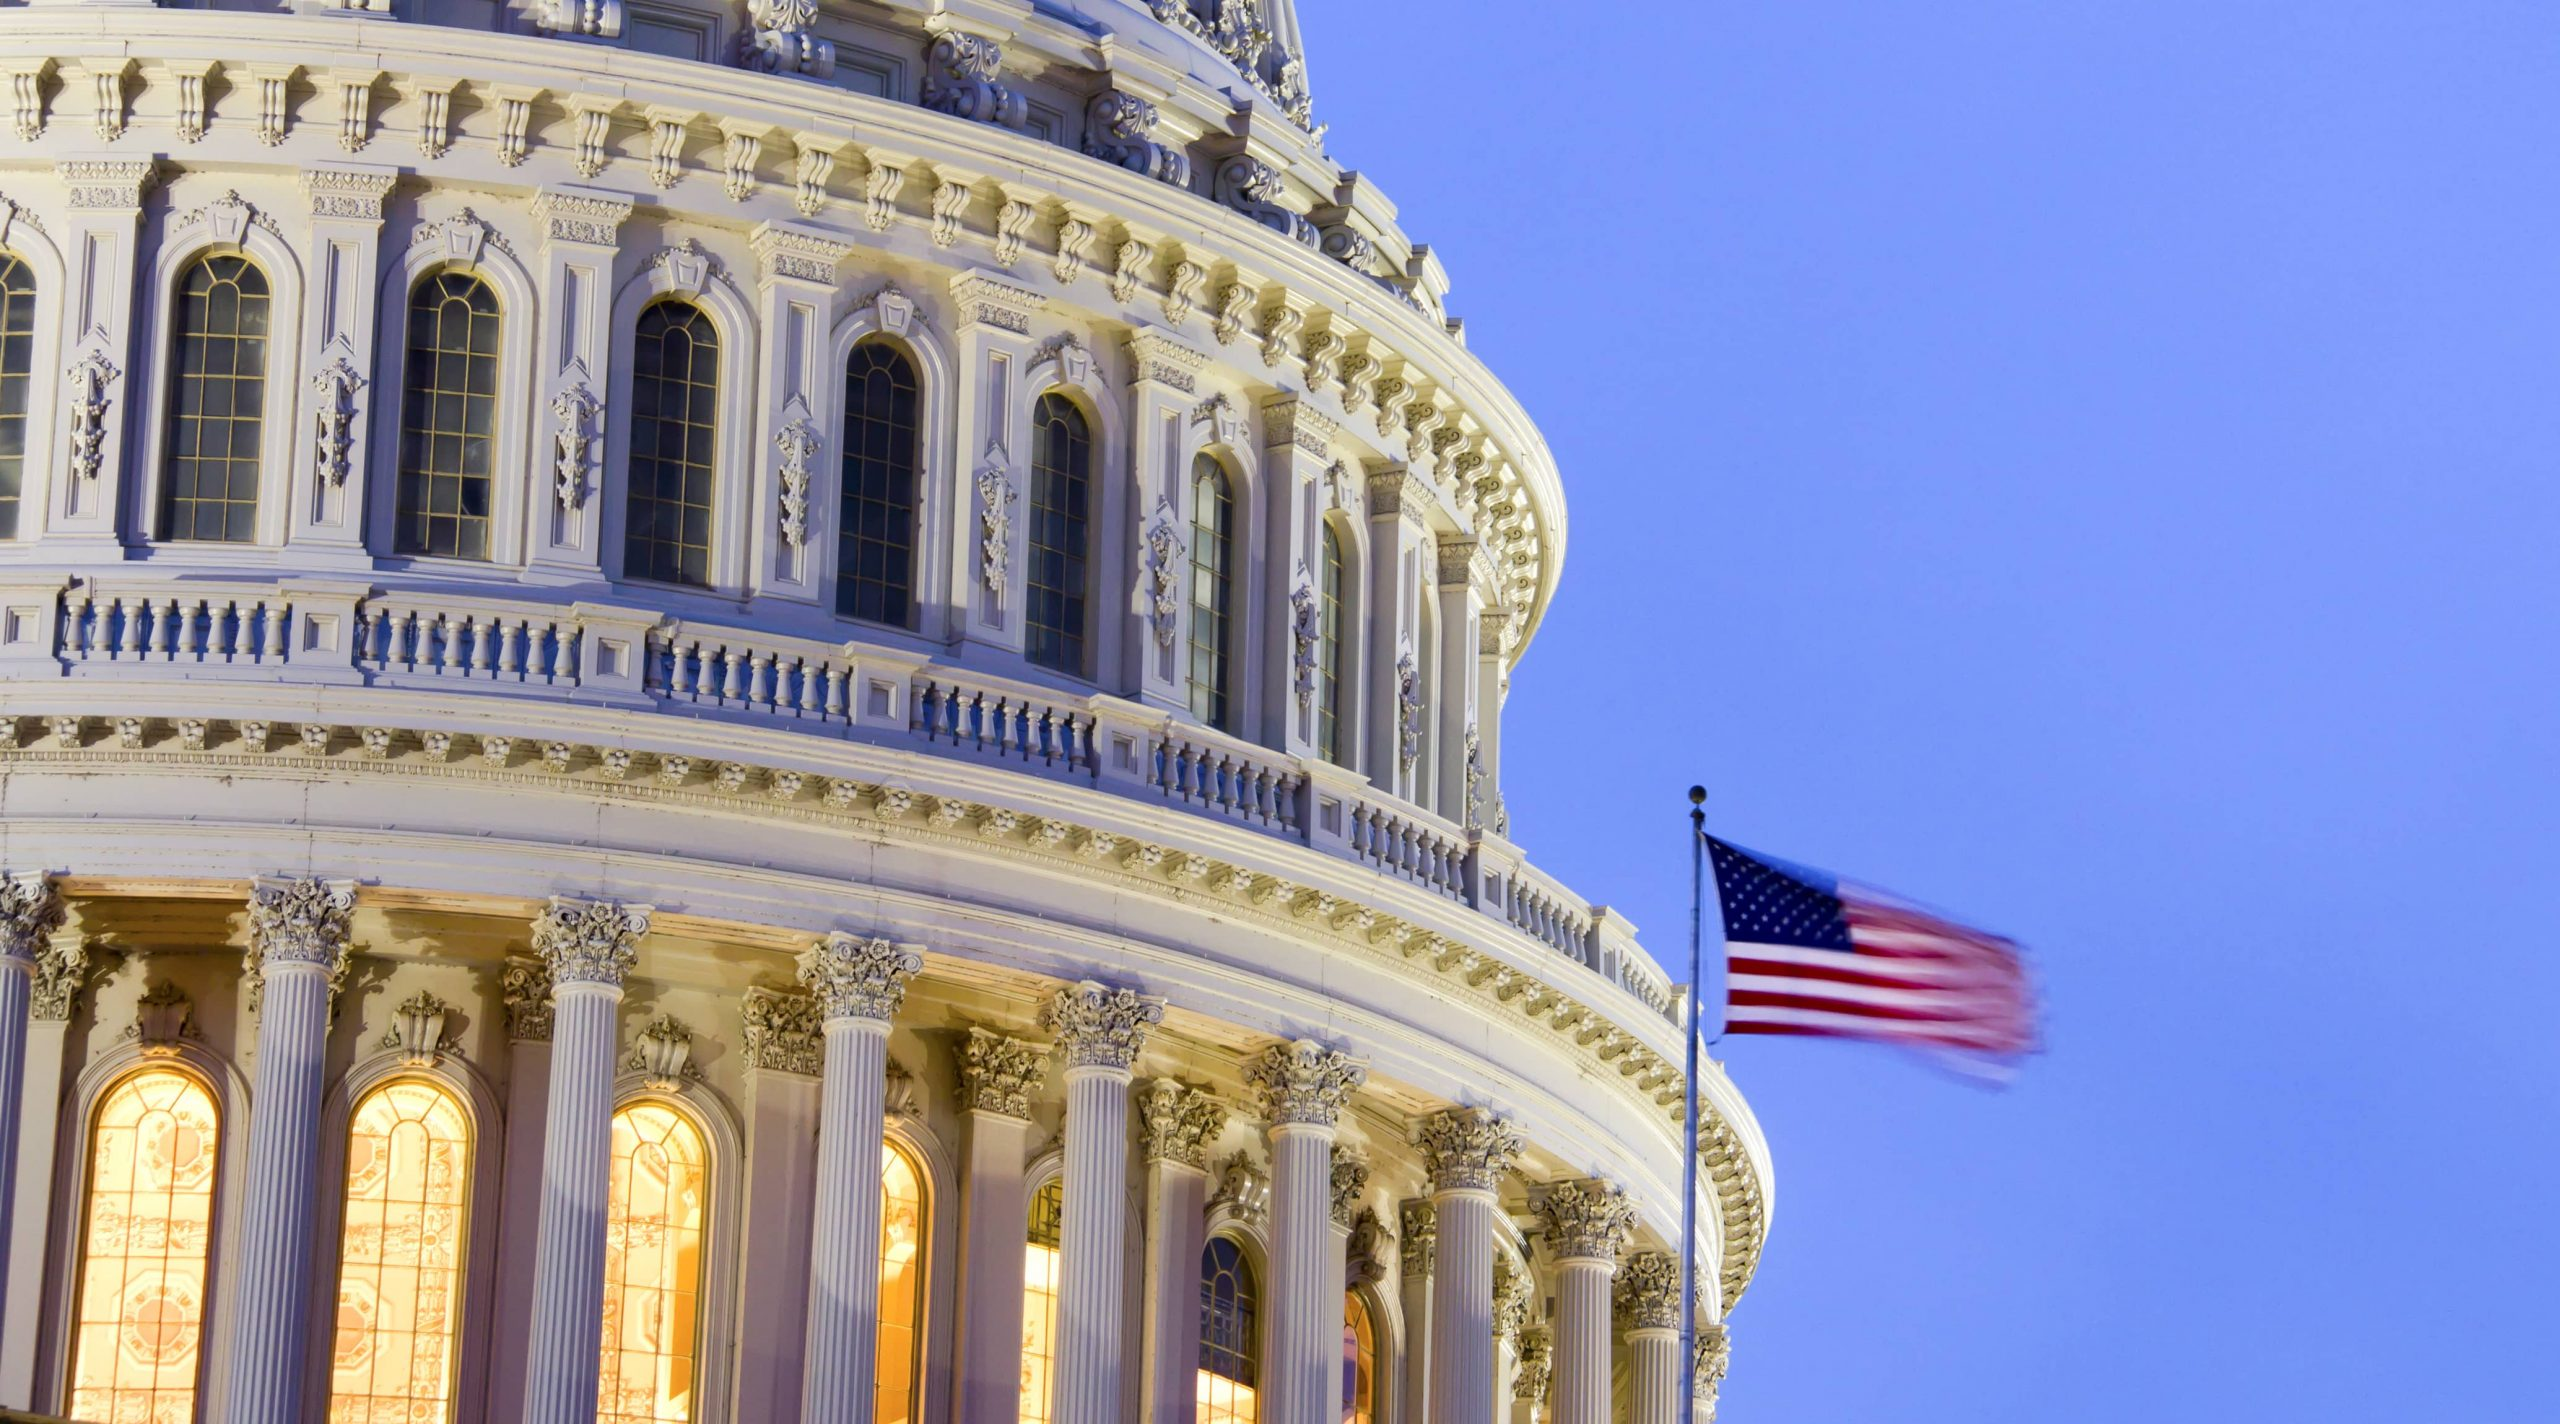 Post-Election 2020 Thoughts and the Need for Term Limits